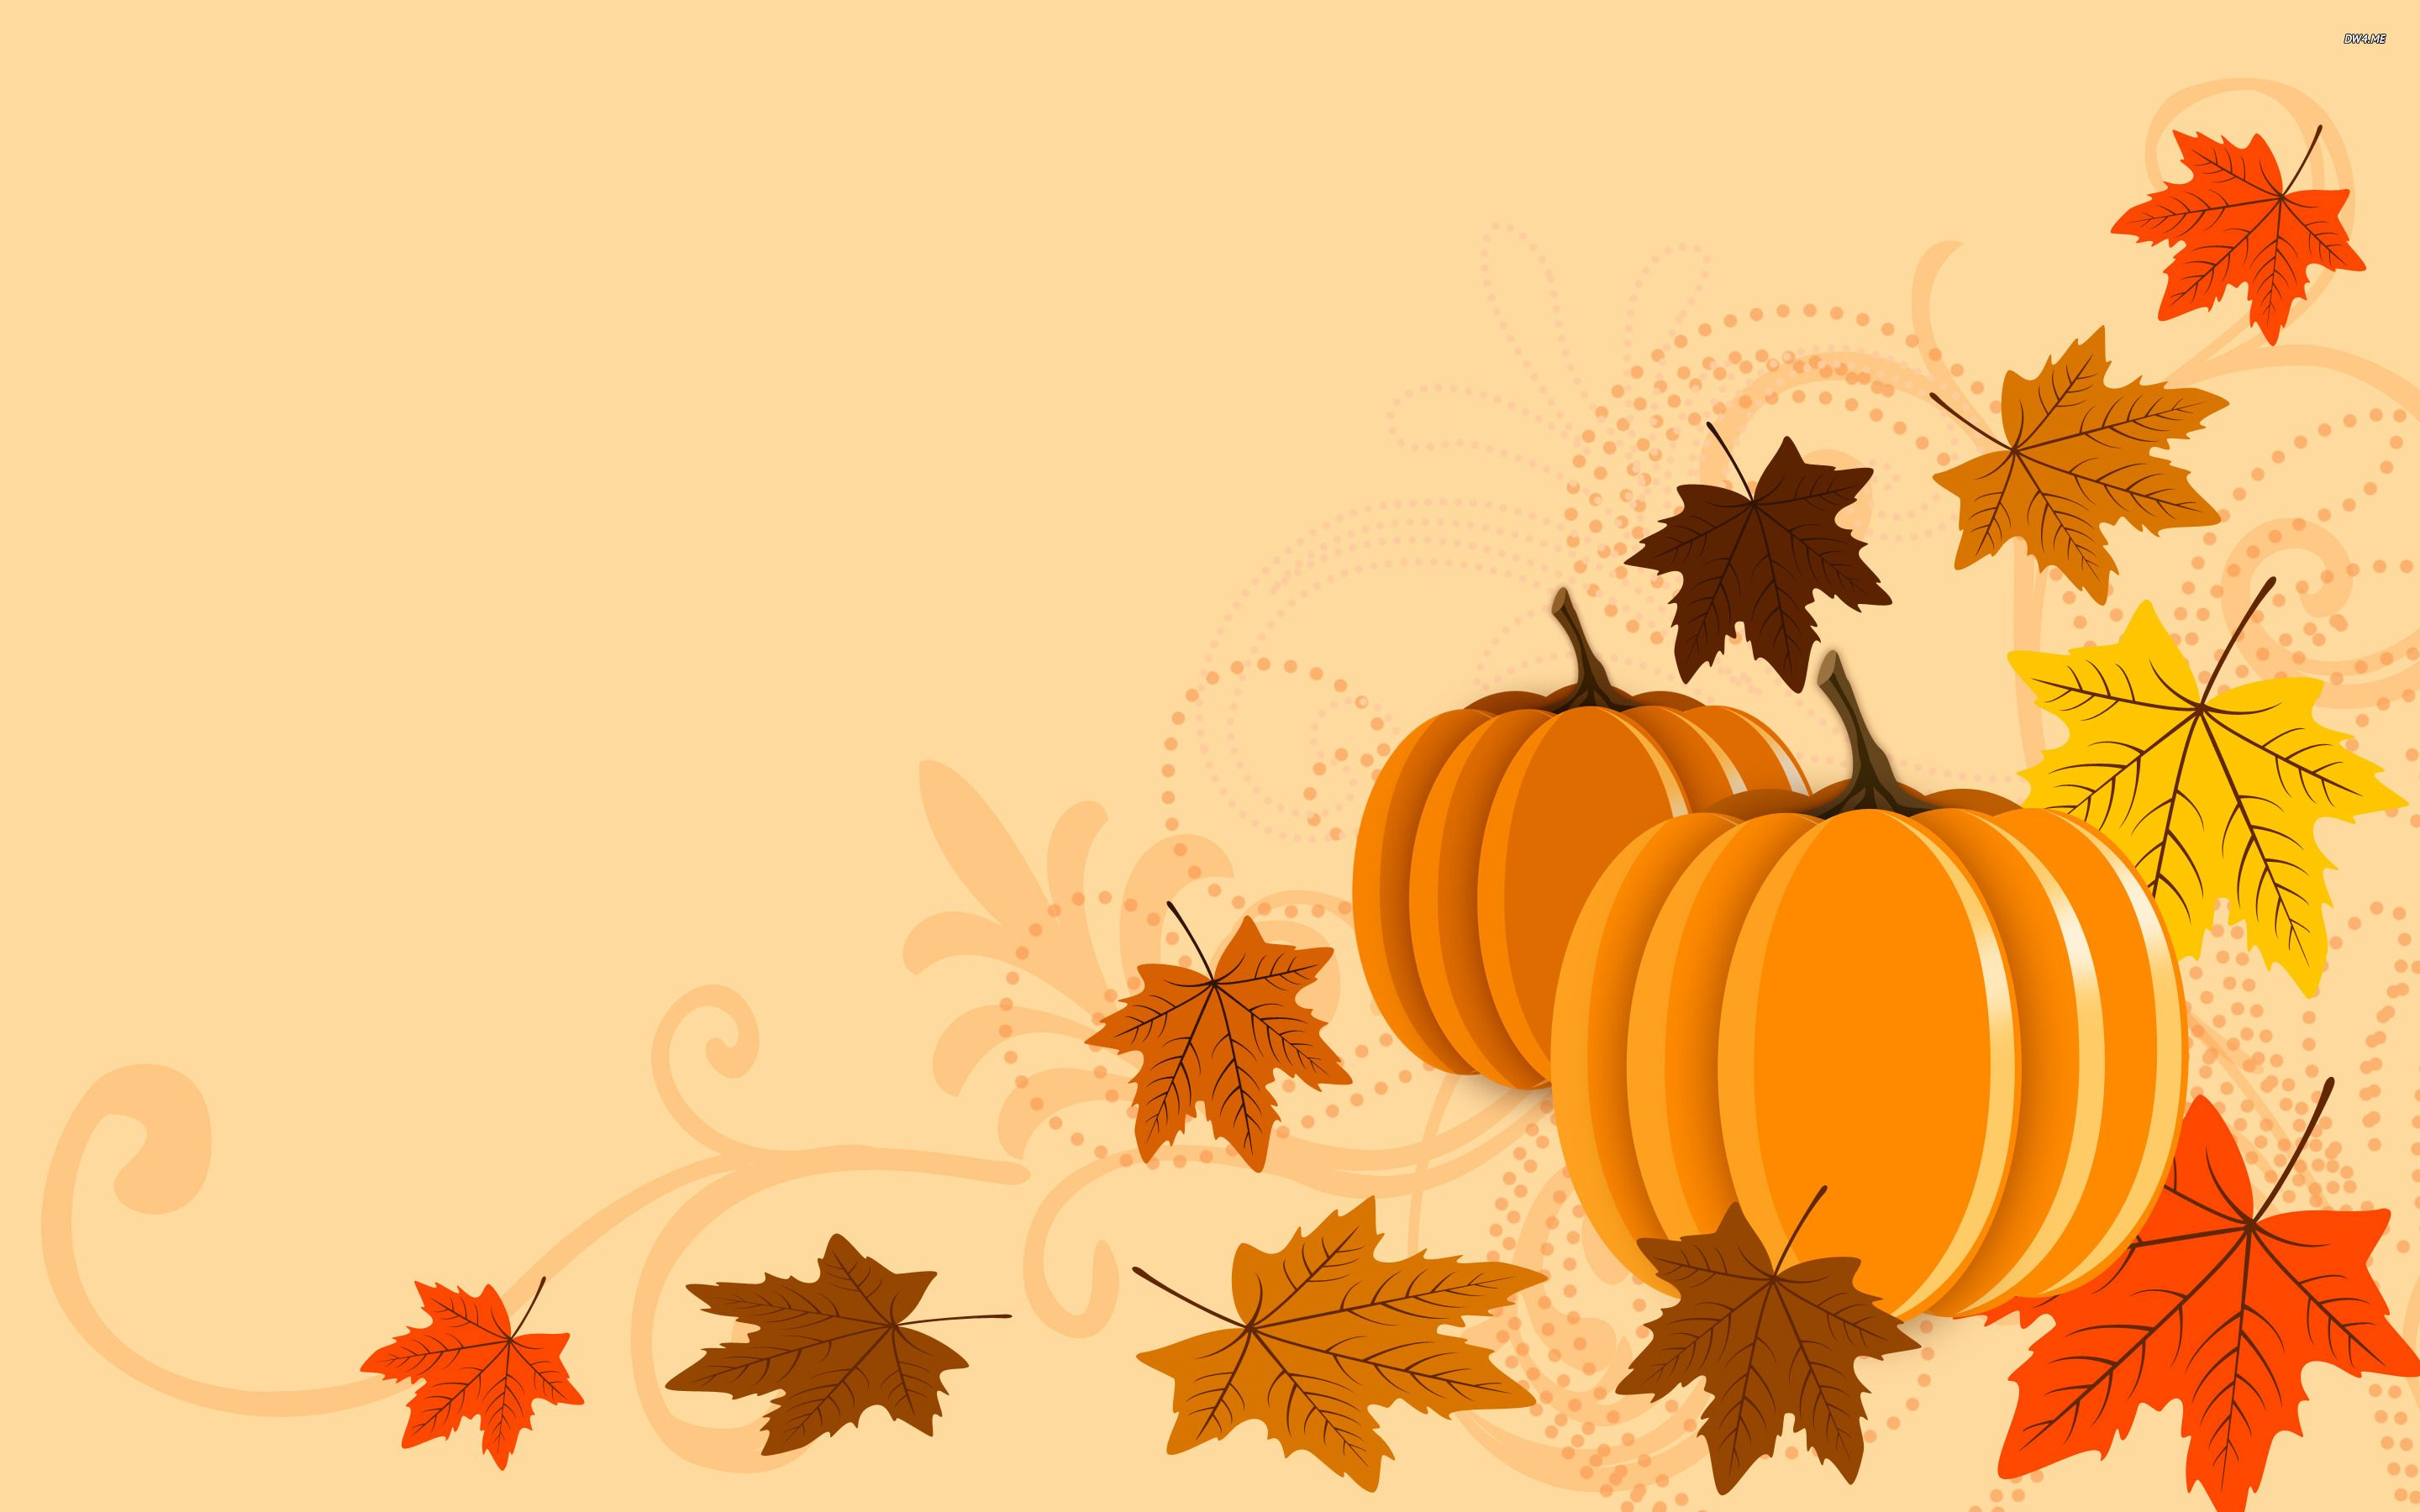 fall wallpaper for computer background.